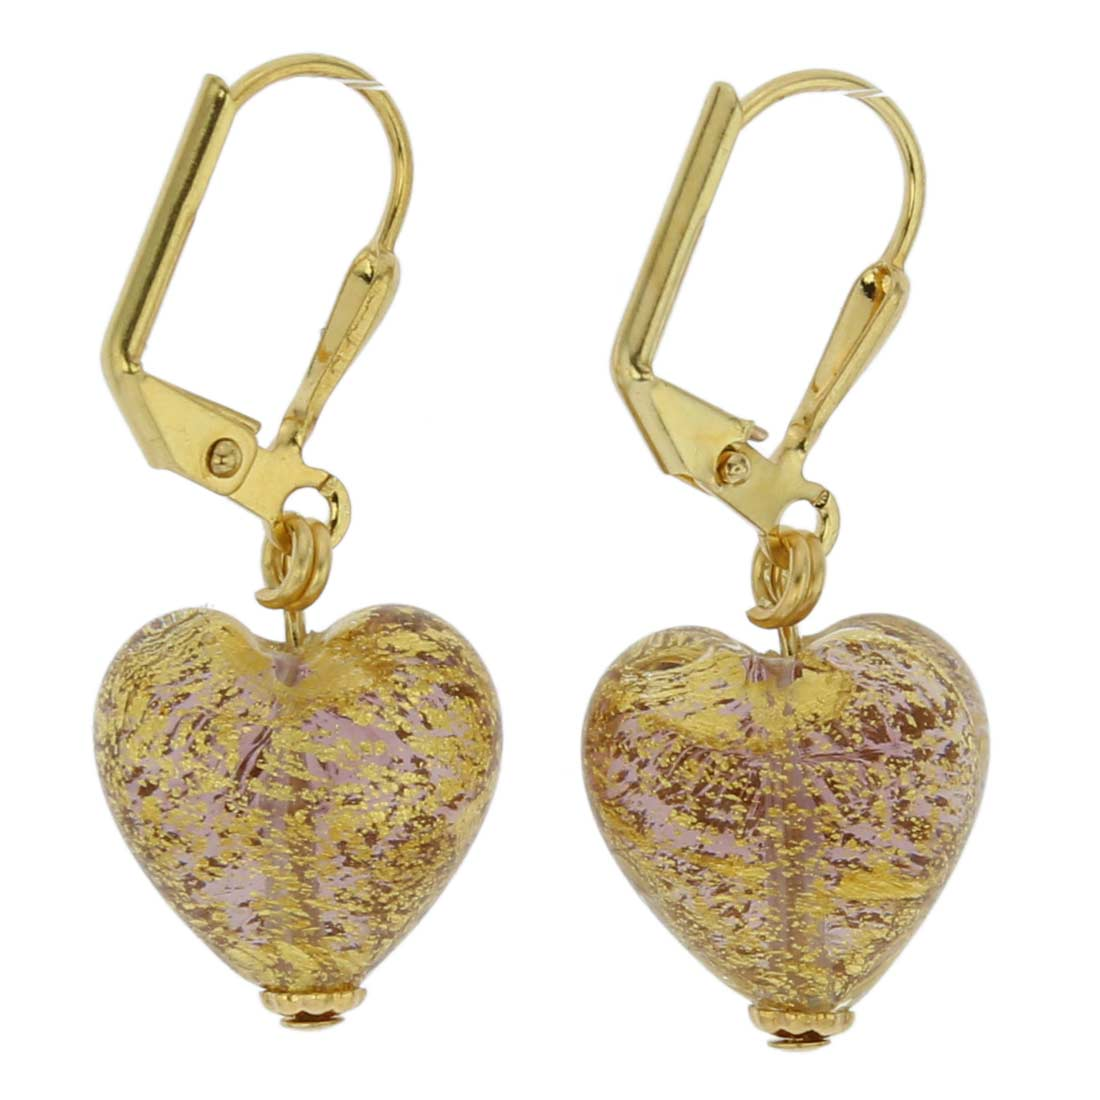 Ca D'Oro Murano Heart earrings - Amethyst